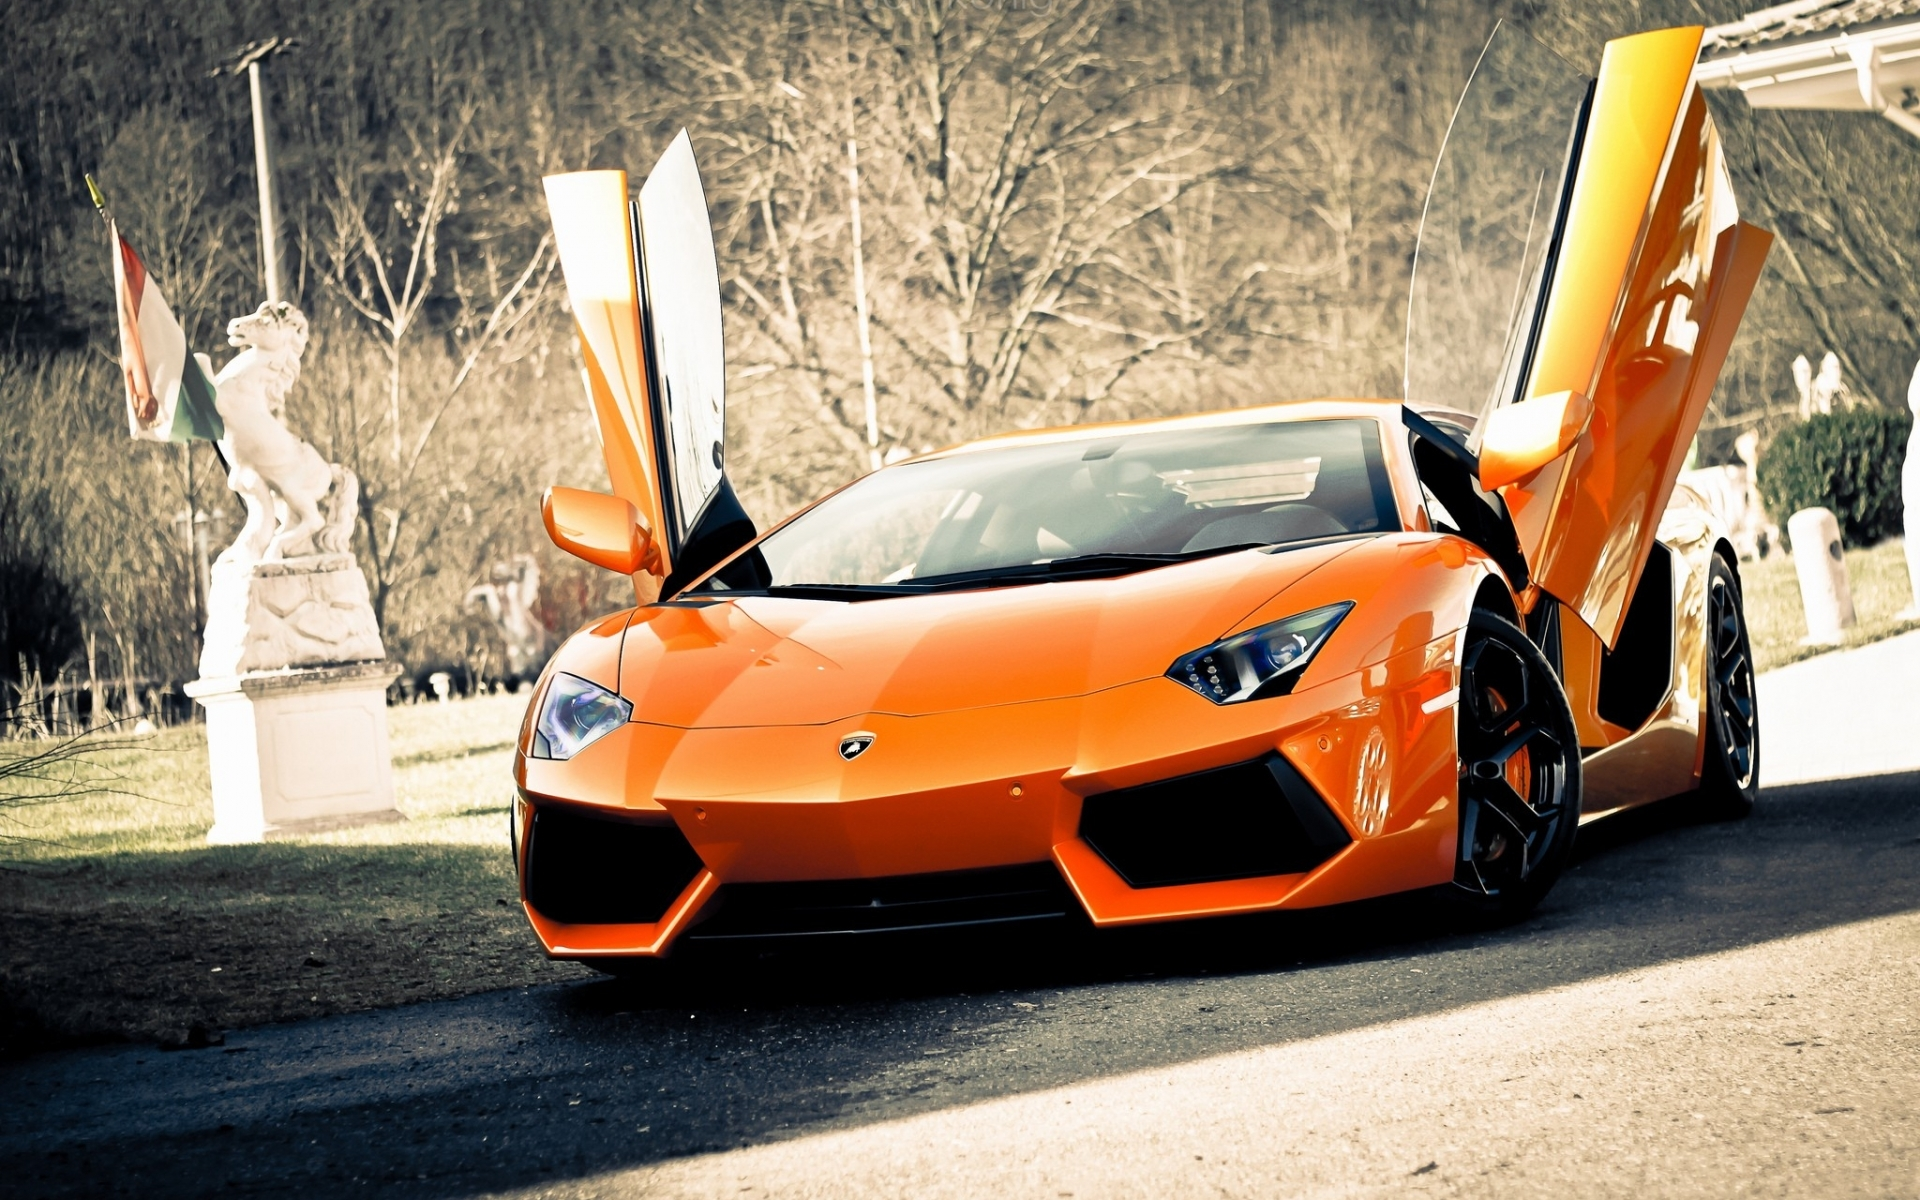 25580 download wallpaper Transport, Auto, Lamborghini screensavers and pictures for free